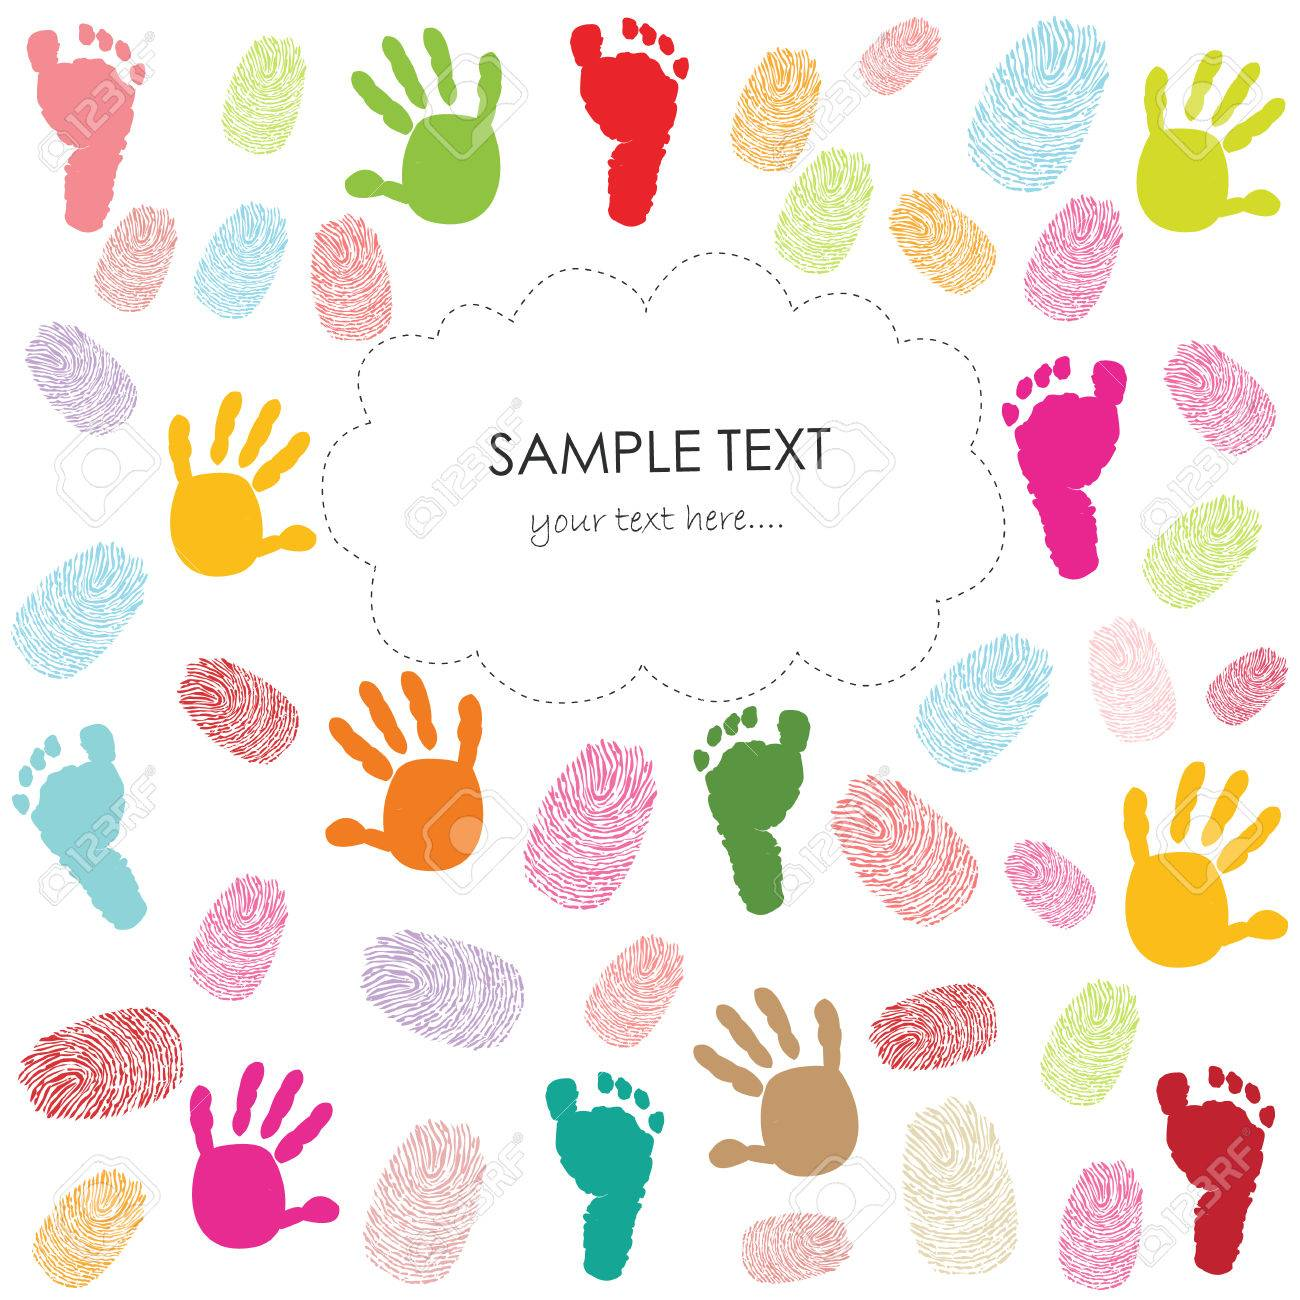 Baby Footprint Hand Prints And Finger Prints Kids Greeting Card